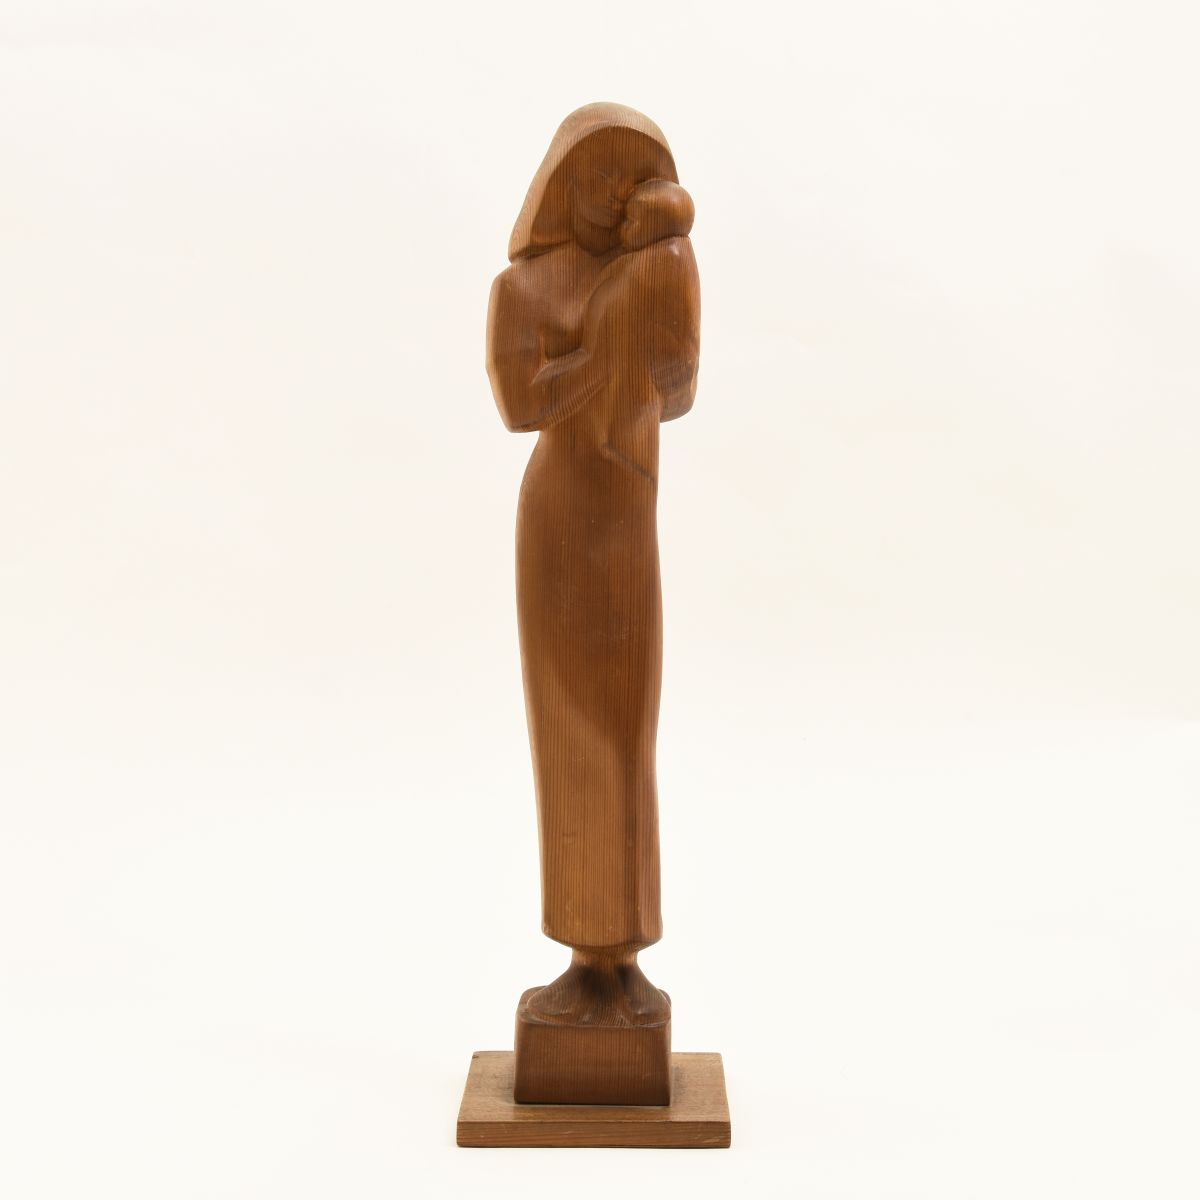 Wooden-Sculpture-Mother-and-Child